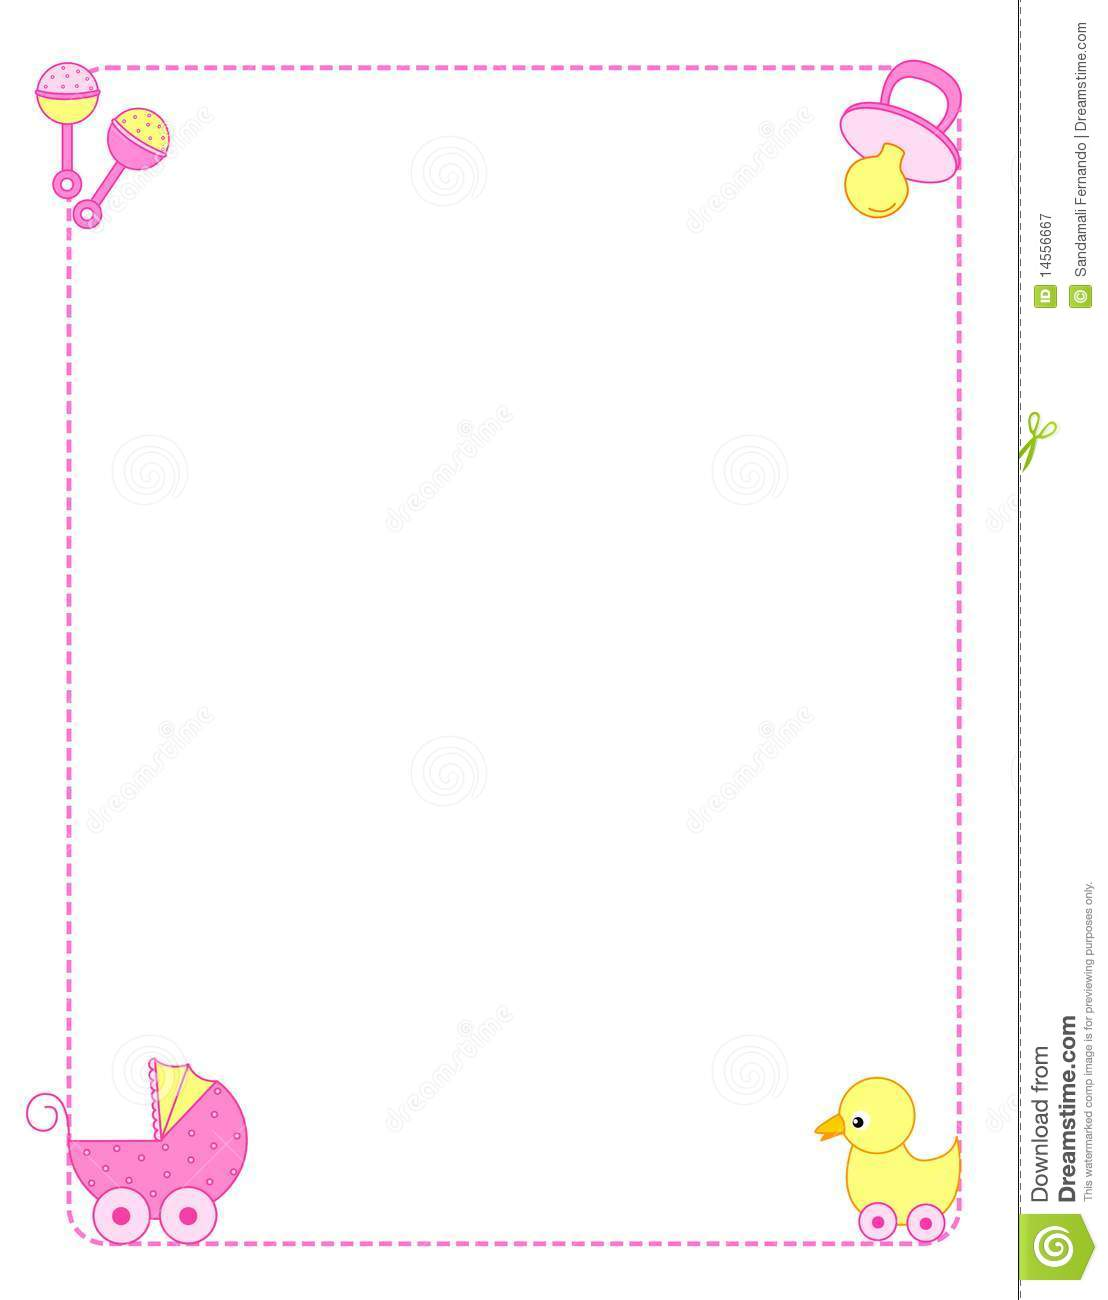 Cute baby girl border   frame with colorful baby accessories on    Baby Girl Borders